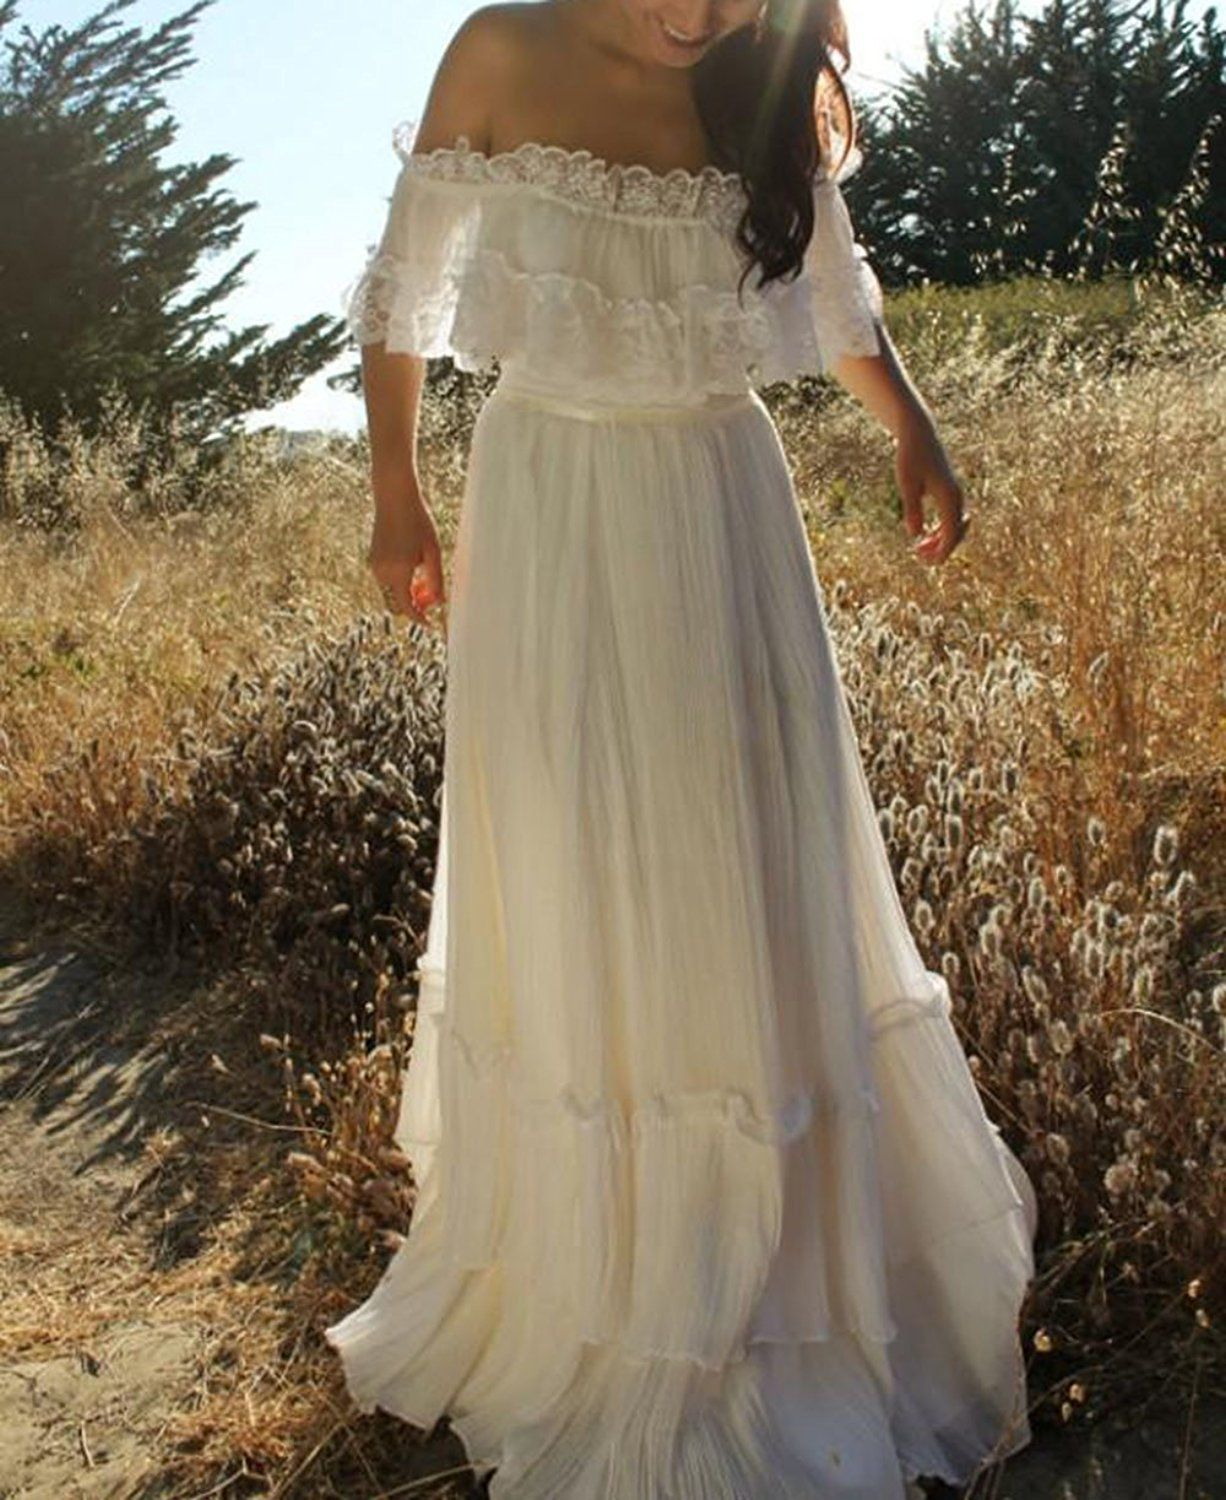 92a133f4be9a6 Veilace Women's Bohemian Wedding Dress Off the Shoulder Lace Chiffon Beach  Boho Bridal Gowns .. at Amazon Women's Clothing store: